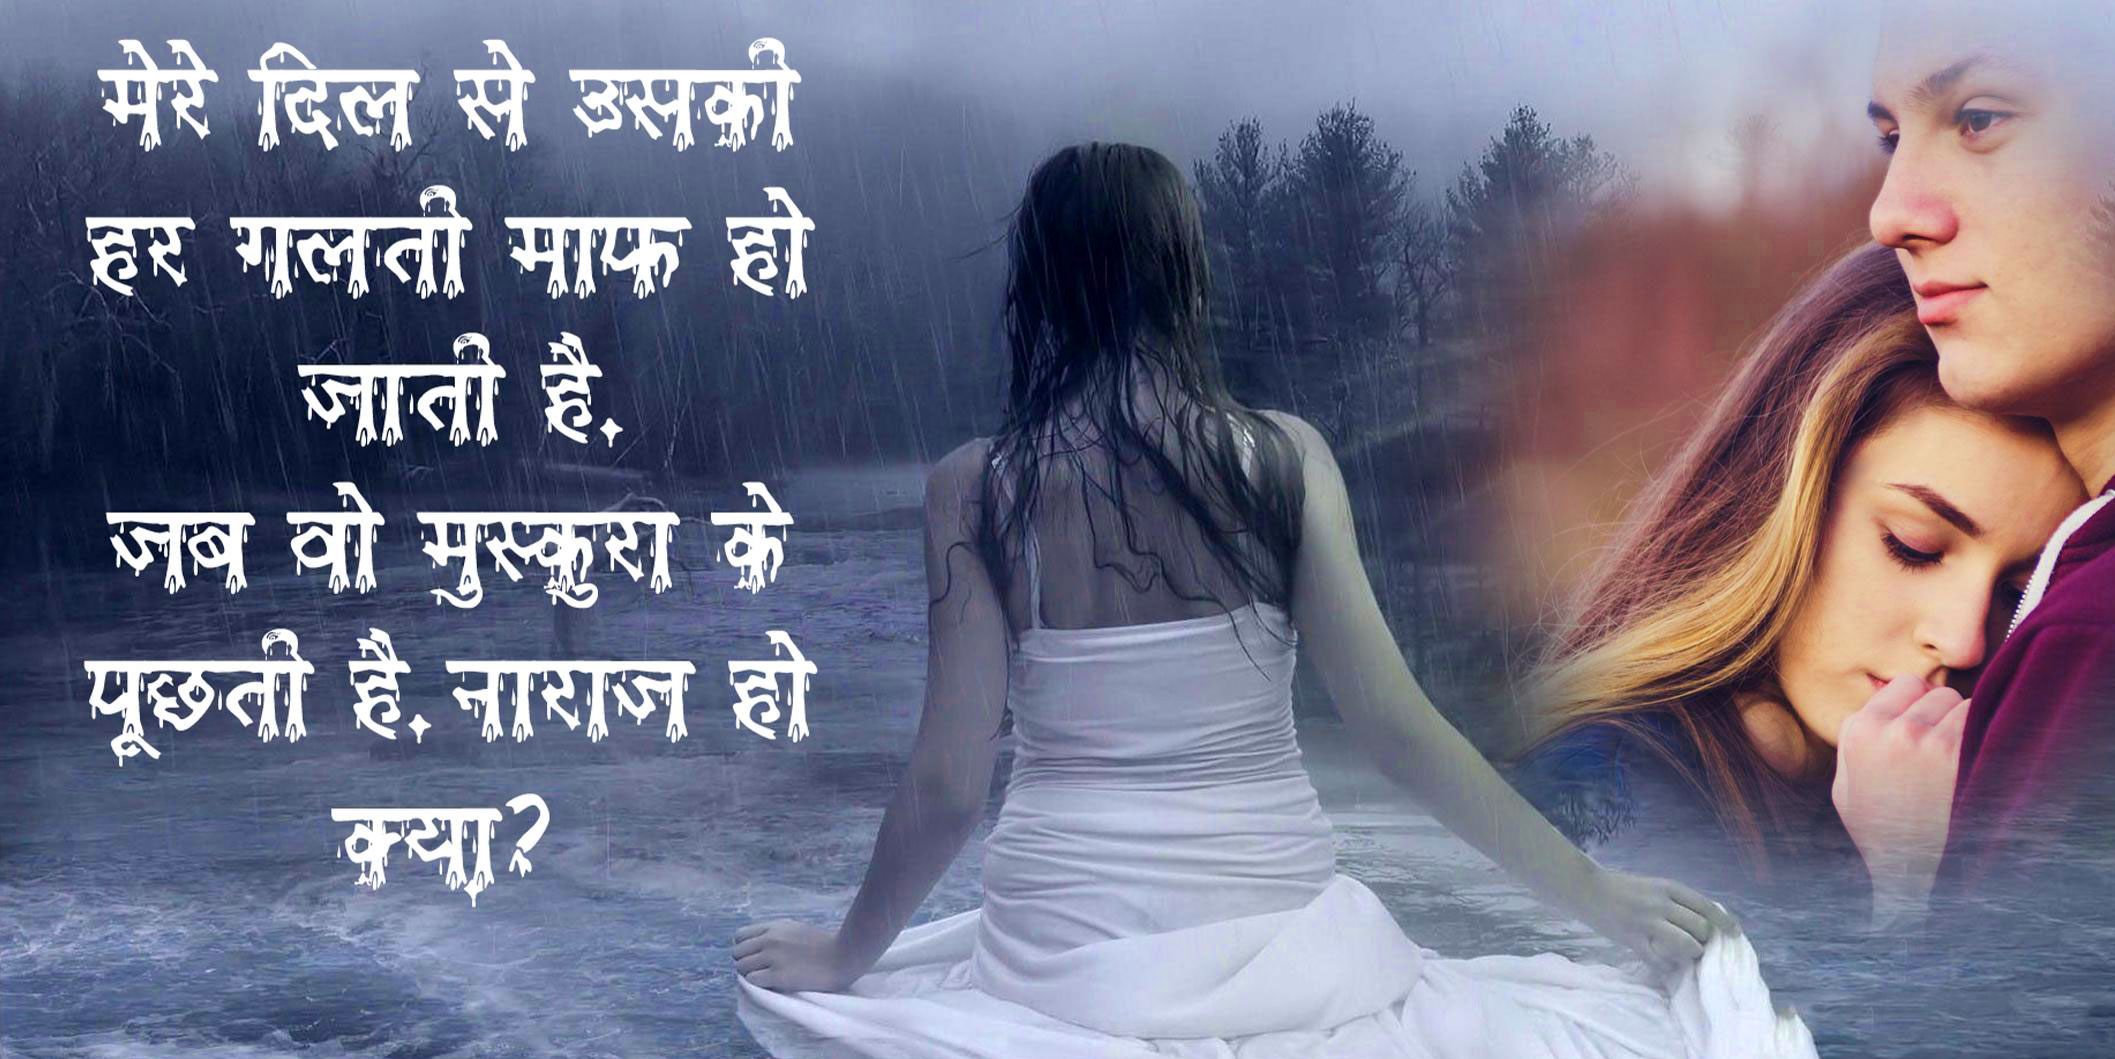 Hindi-Bewafa-Shayari-Images-92